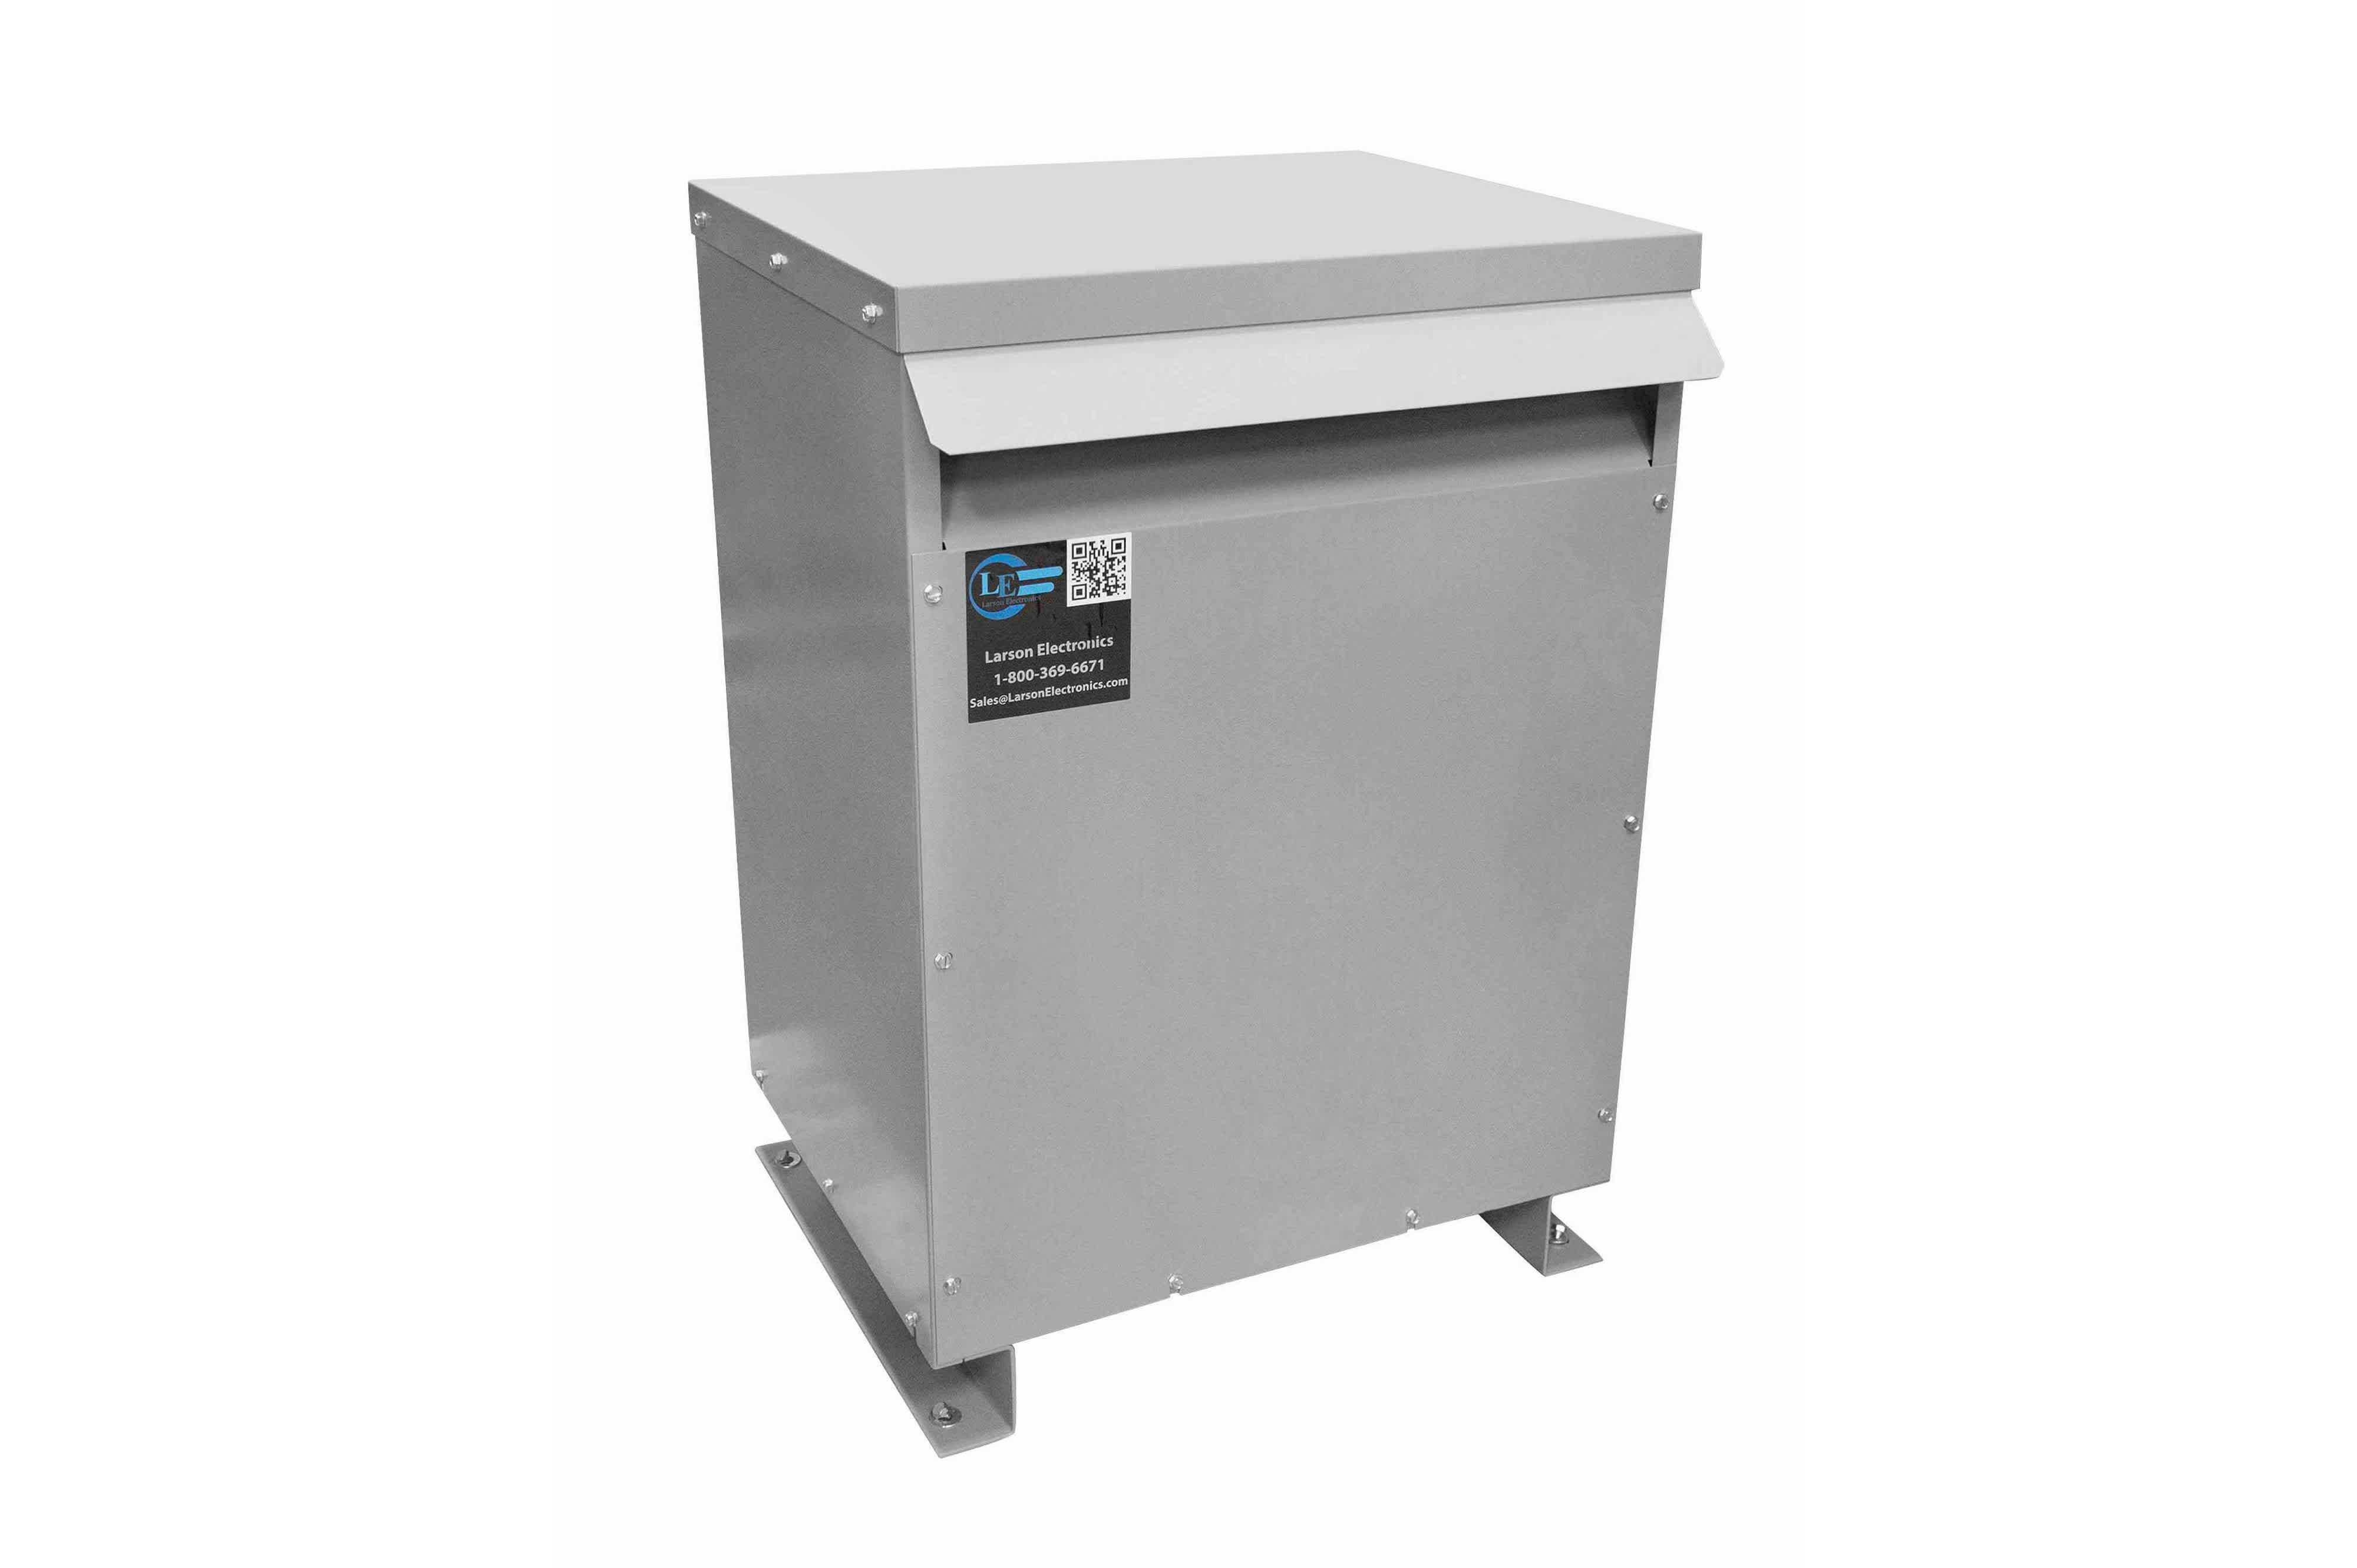 52.5 kVA 3PH Isolation Transformer, 400V Wye Primary, 600V Delta Secondary, N3R, Ventilated, 60 Hz